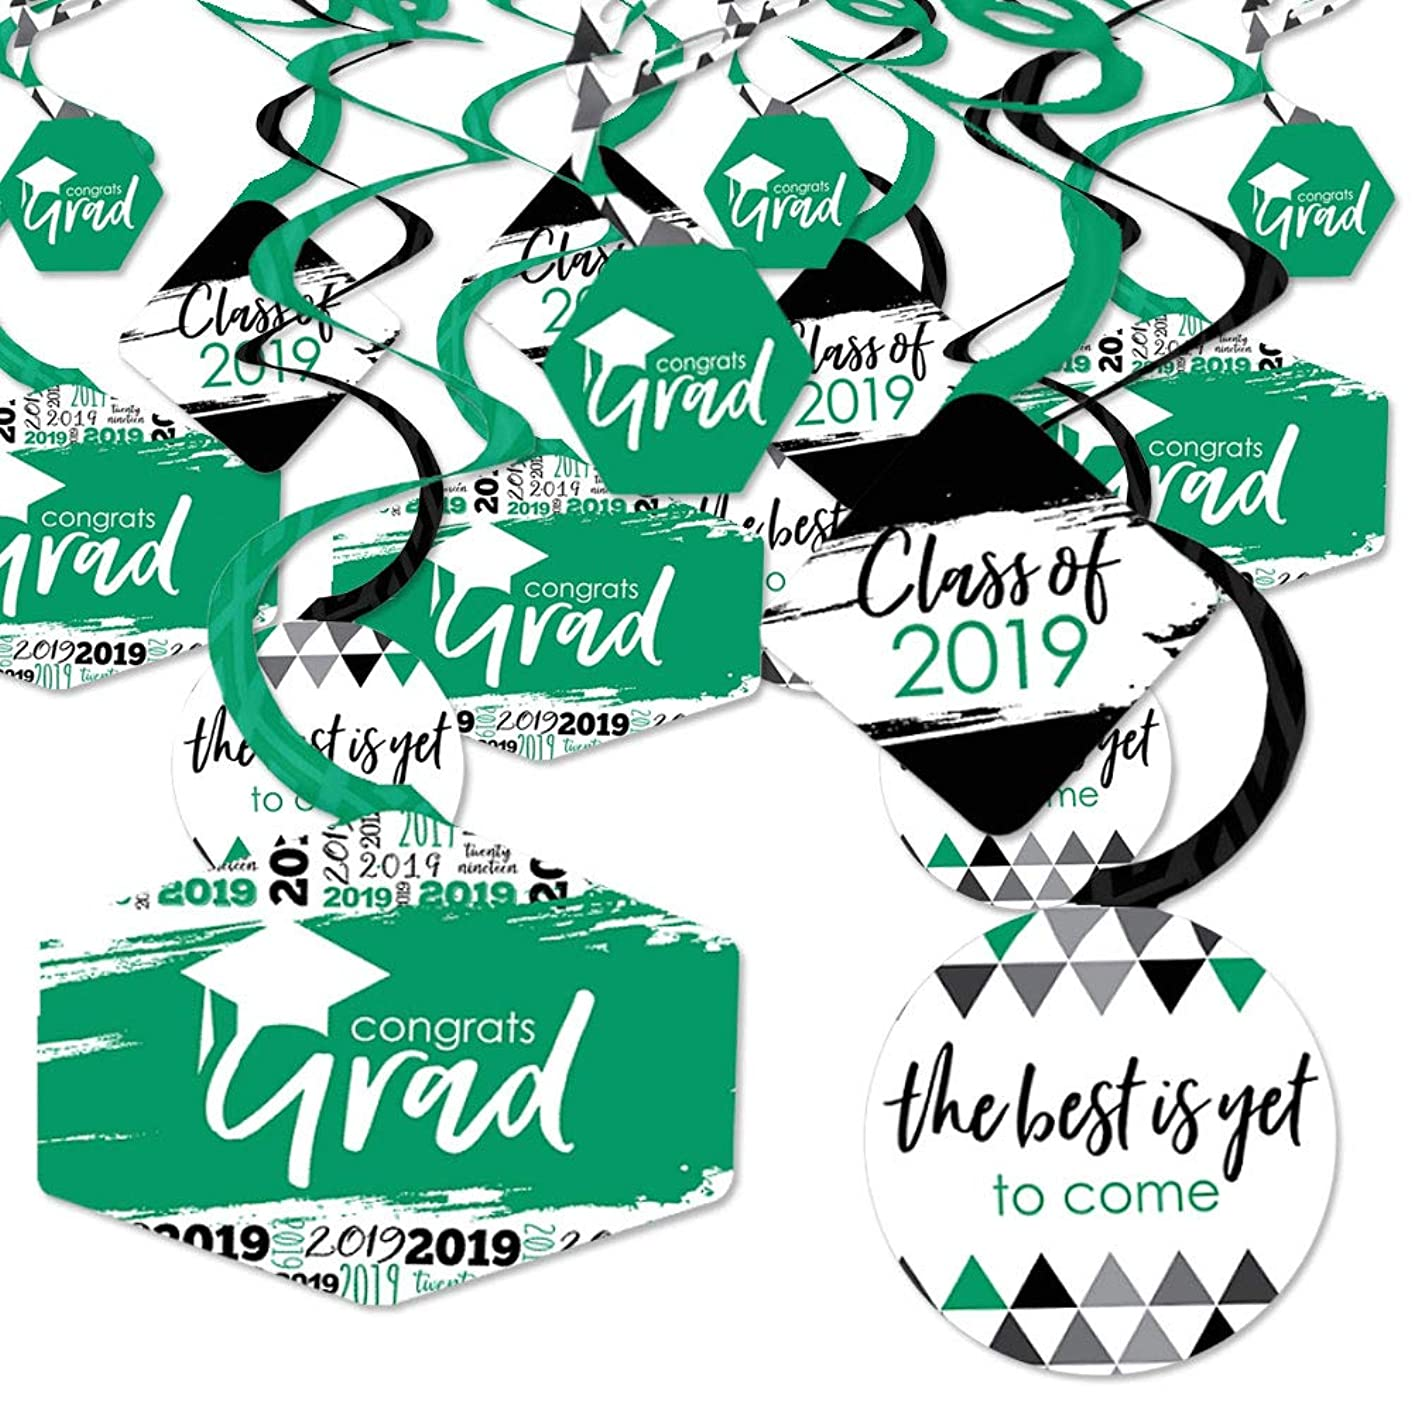 Green Grad - Best is Yet to Come - 2019 Green Graduation Party Hanging Decor - Party Decoration Swirls - Set of 40